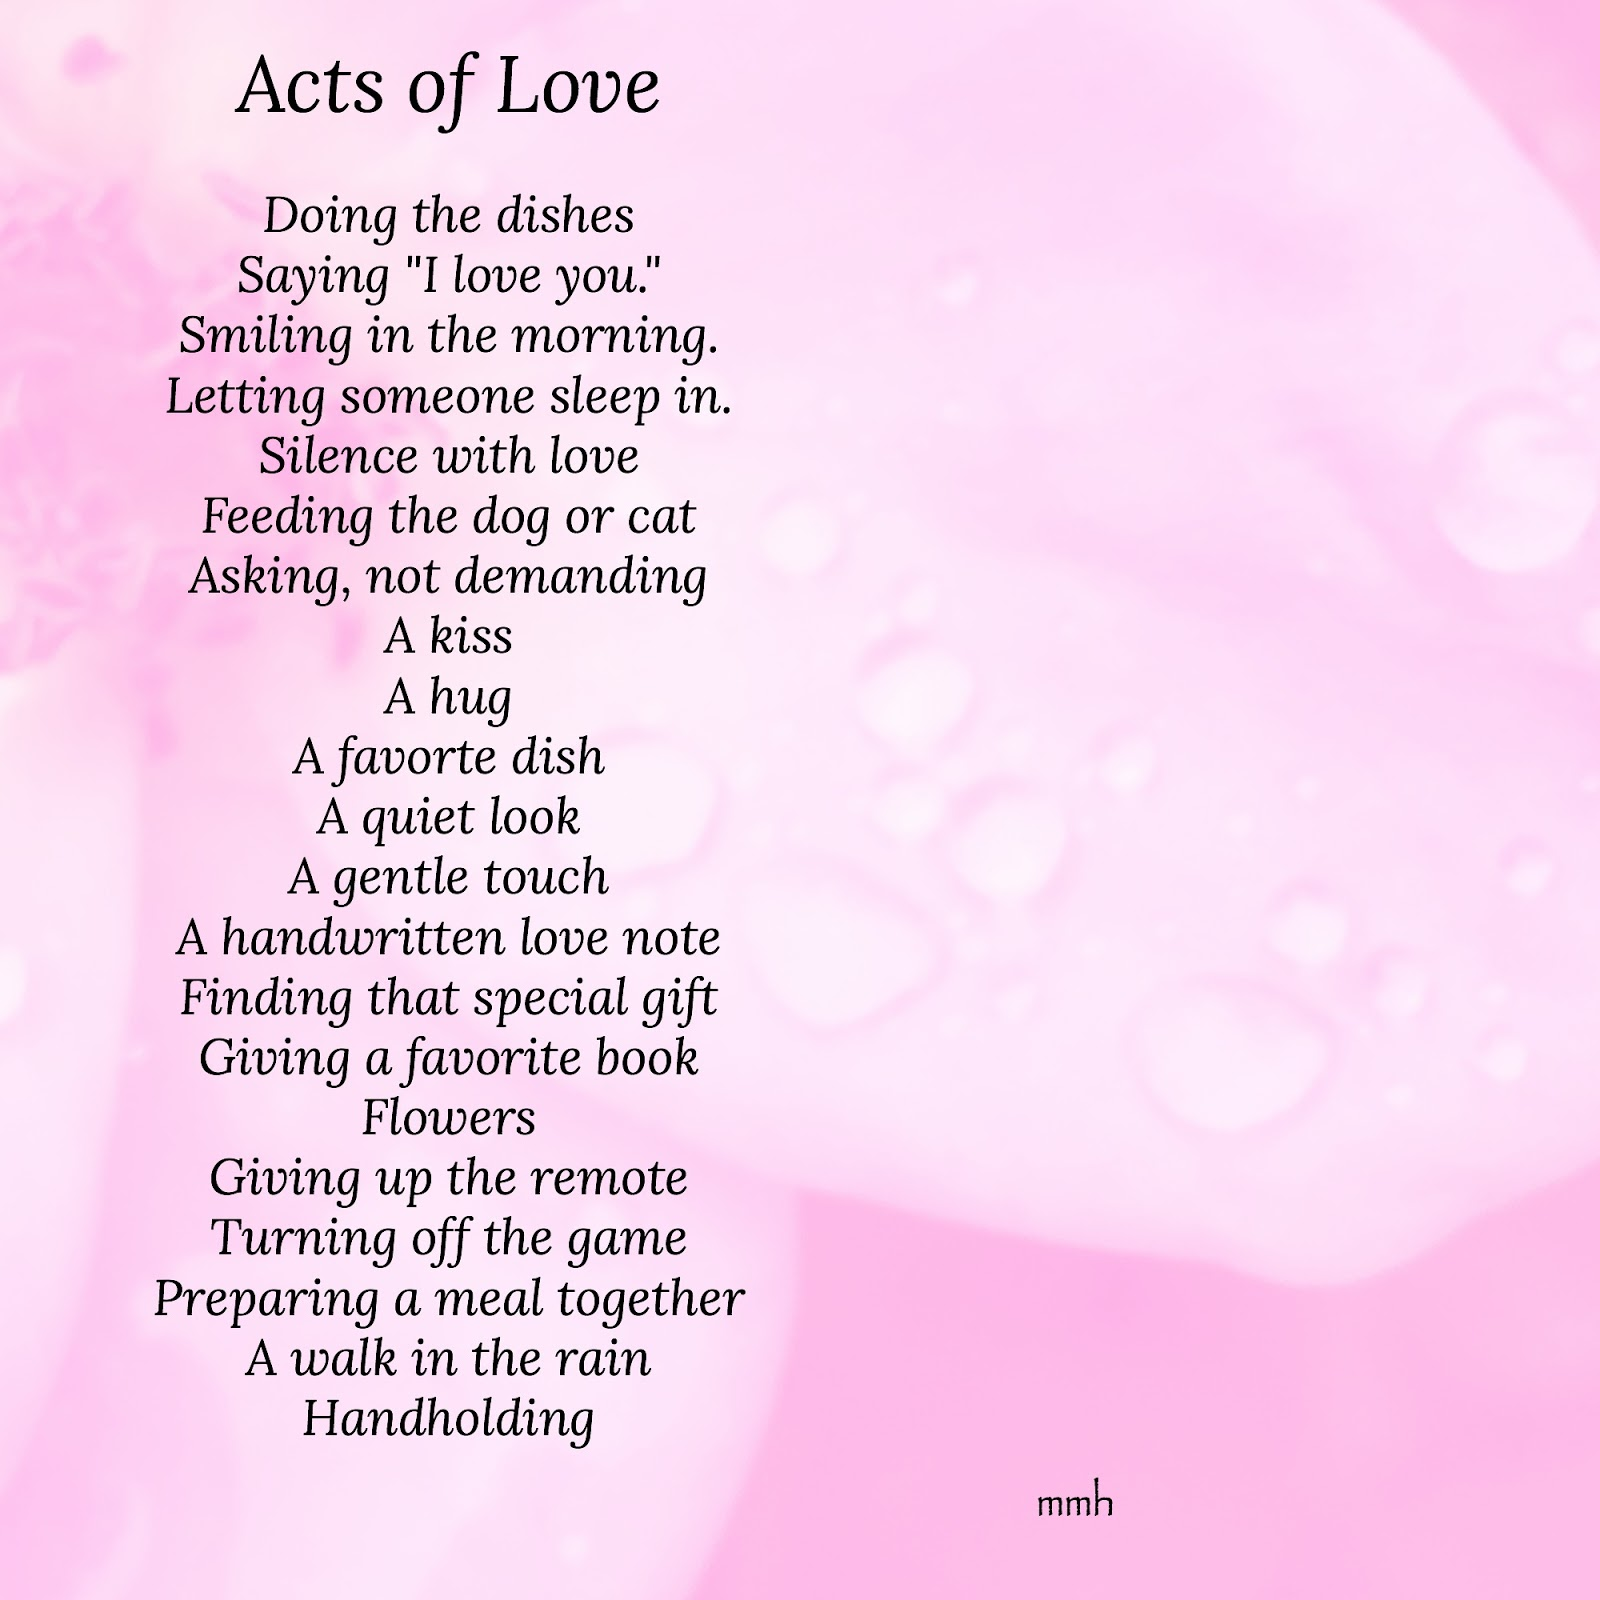 For The Love Of Acts Of Love